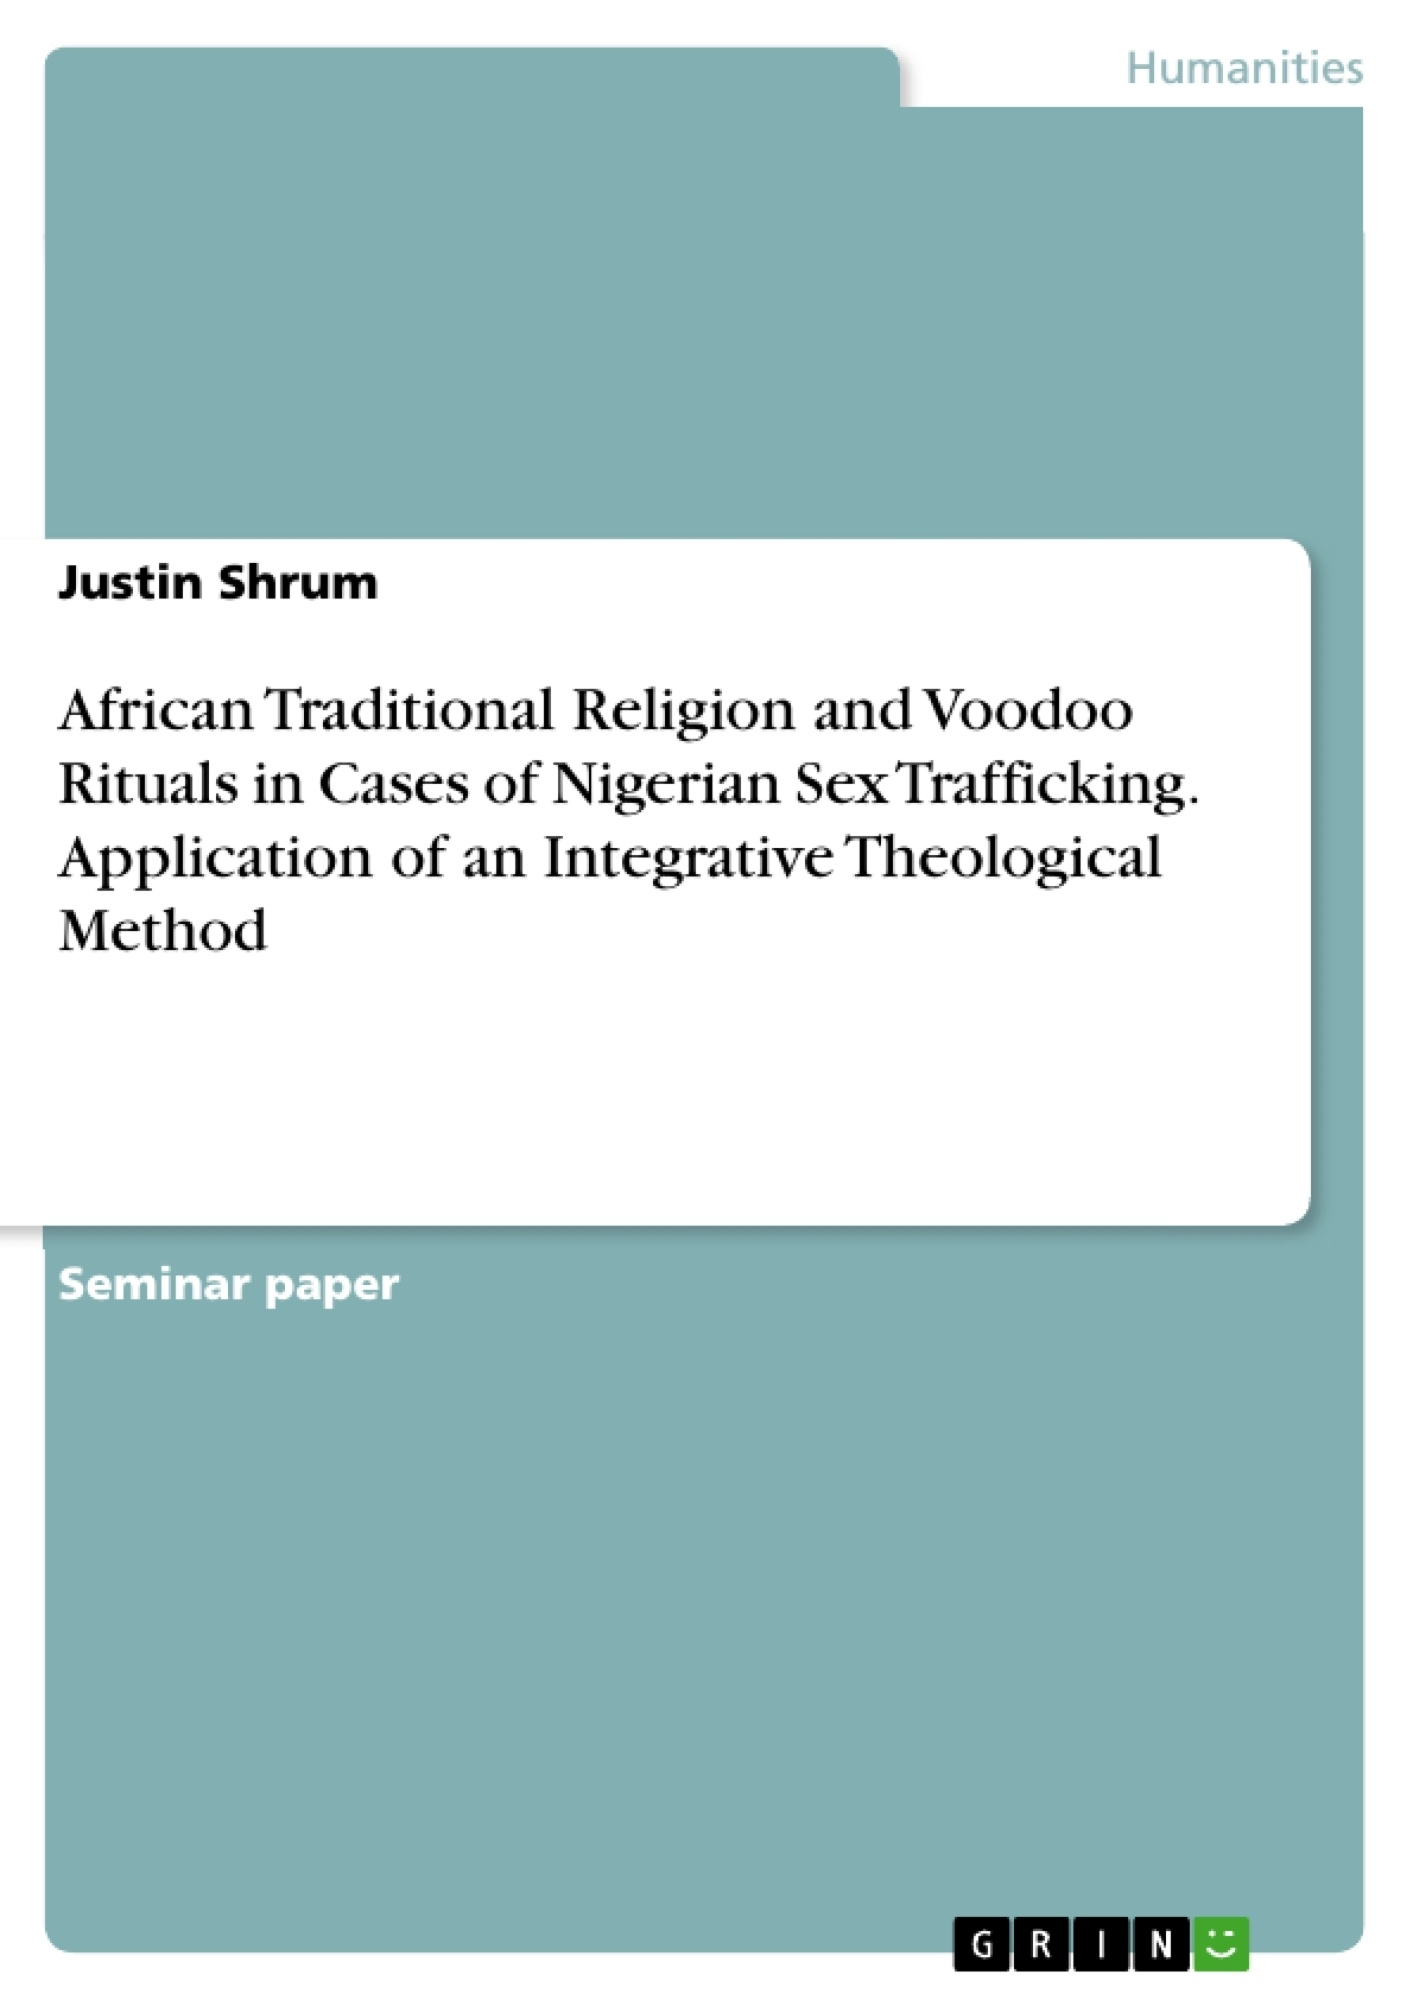 GRIN - African Traditional Religion and Voodoo Rituals in Cases of Nigerian  Sex Trafficking  Application of an Integrative Theological Method